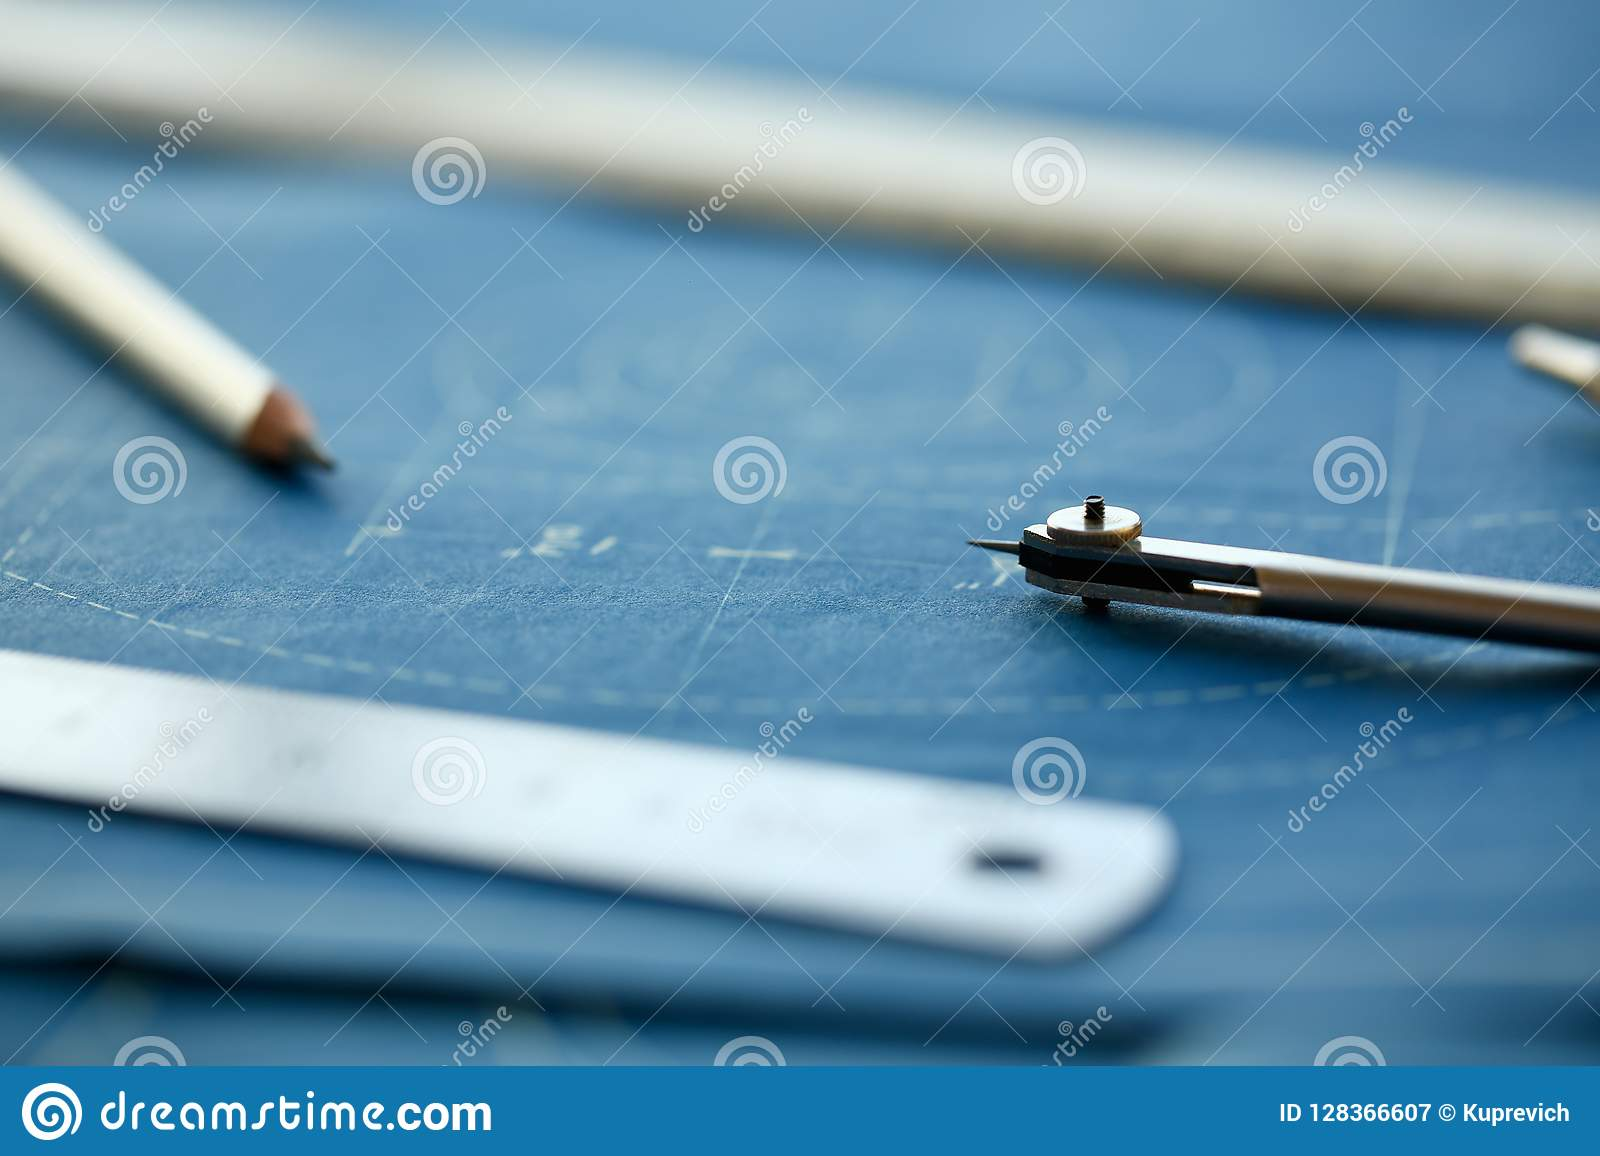 Drawing Engineer Education Design Stock Image - Image of ...